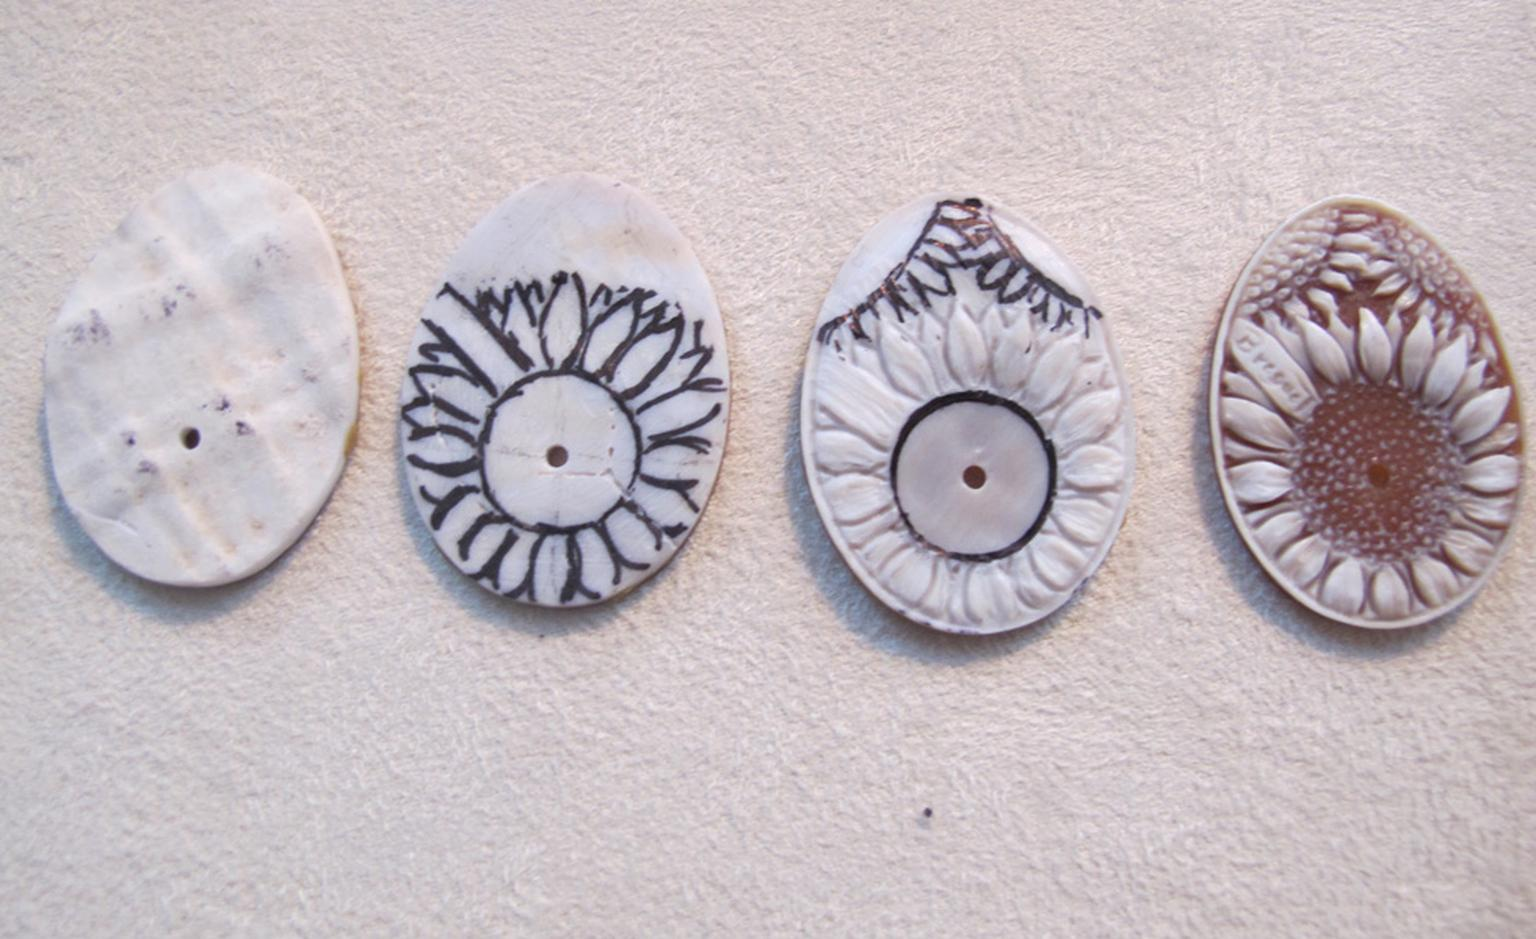 The stages of carving a dial from a shell cameo.